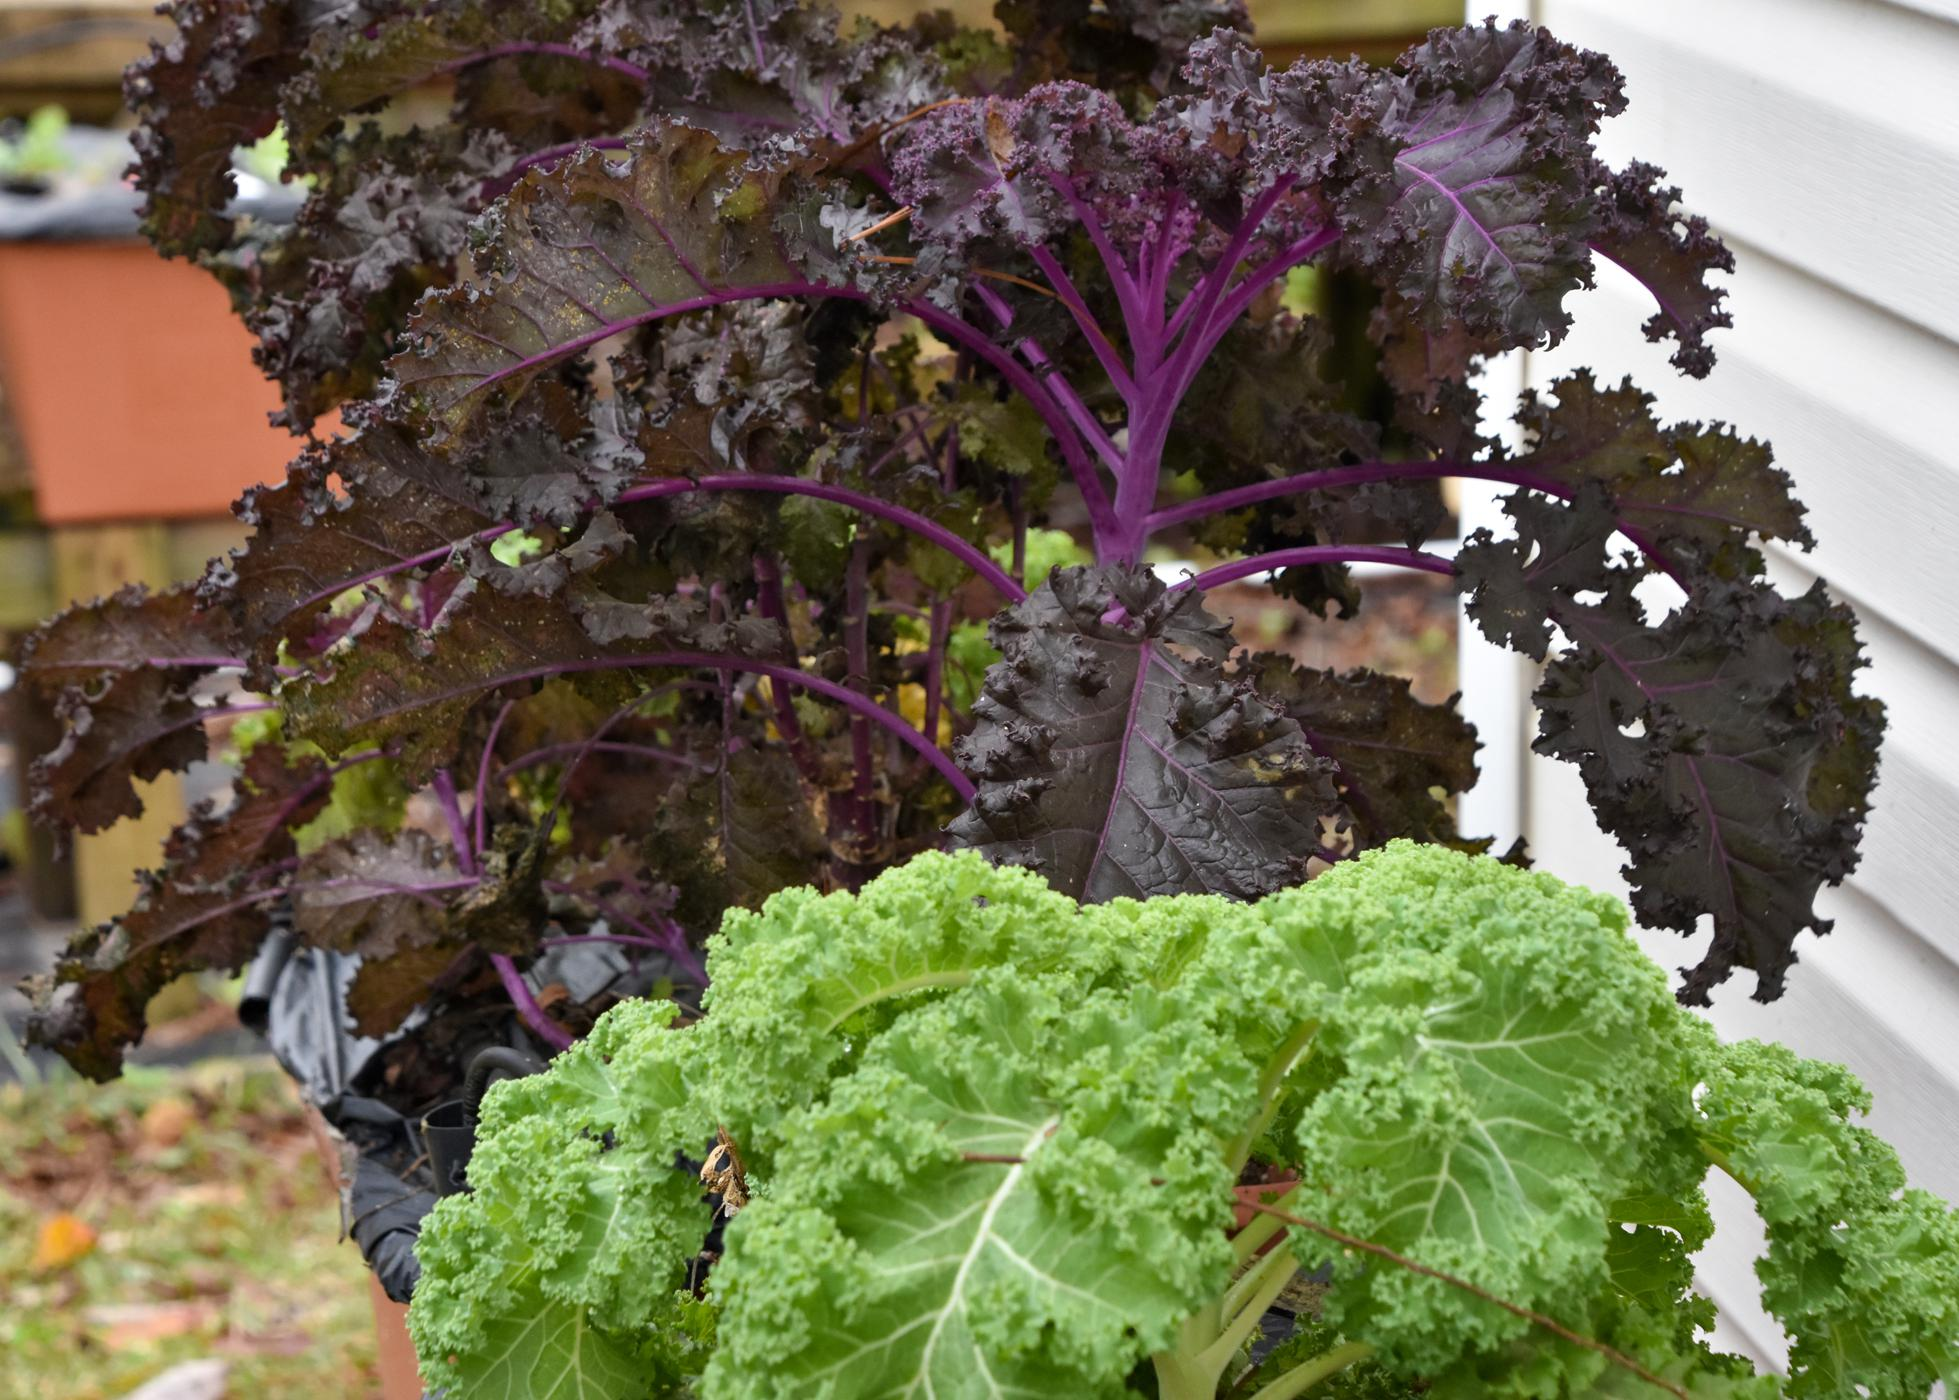 Plants with ruffled, purple leaves and ruffled, green leaves.